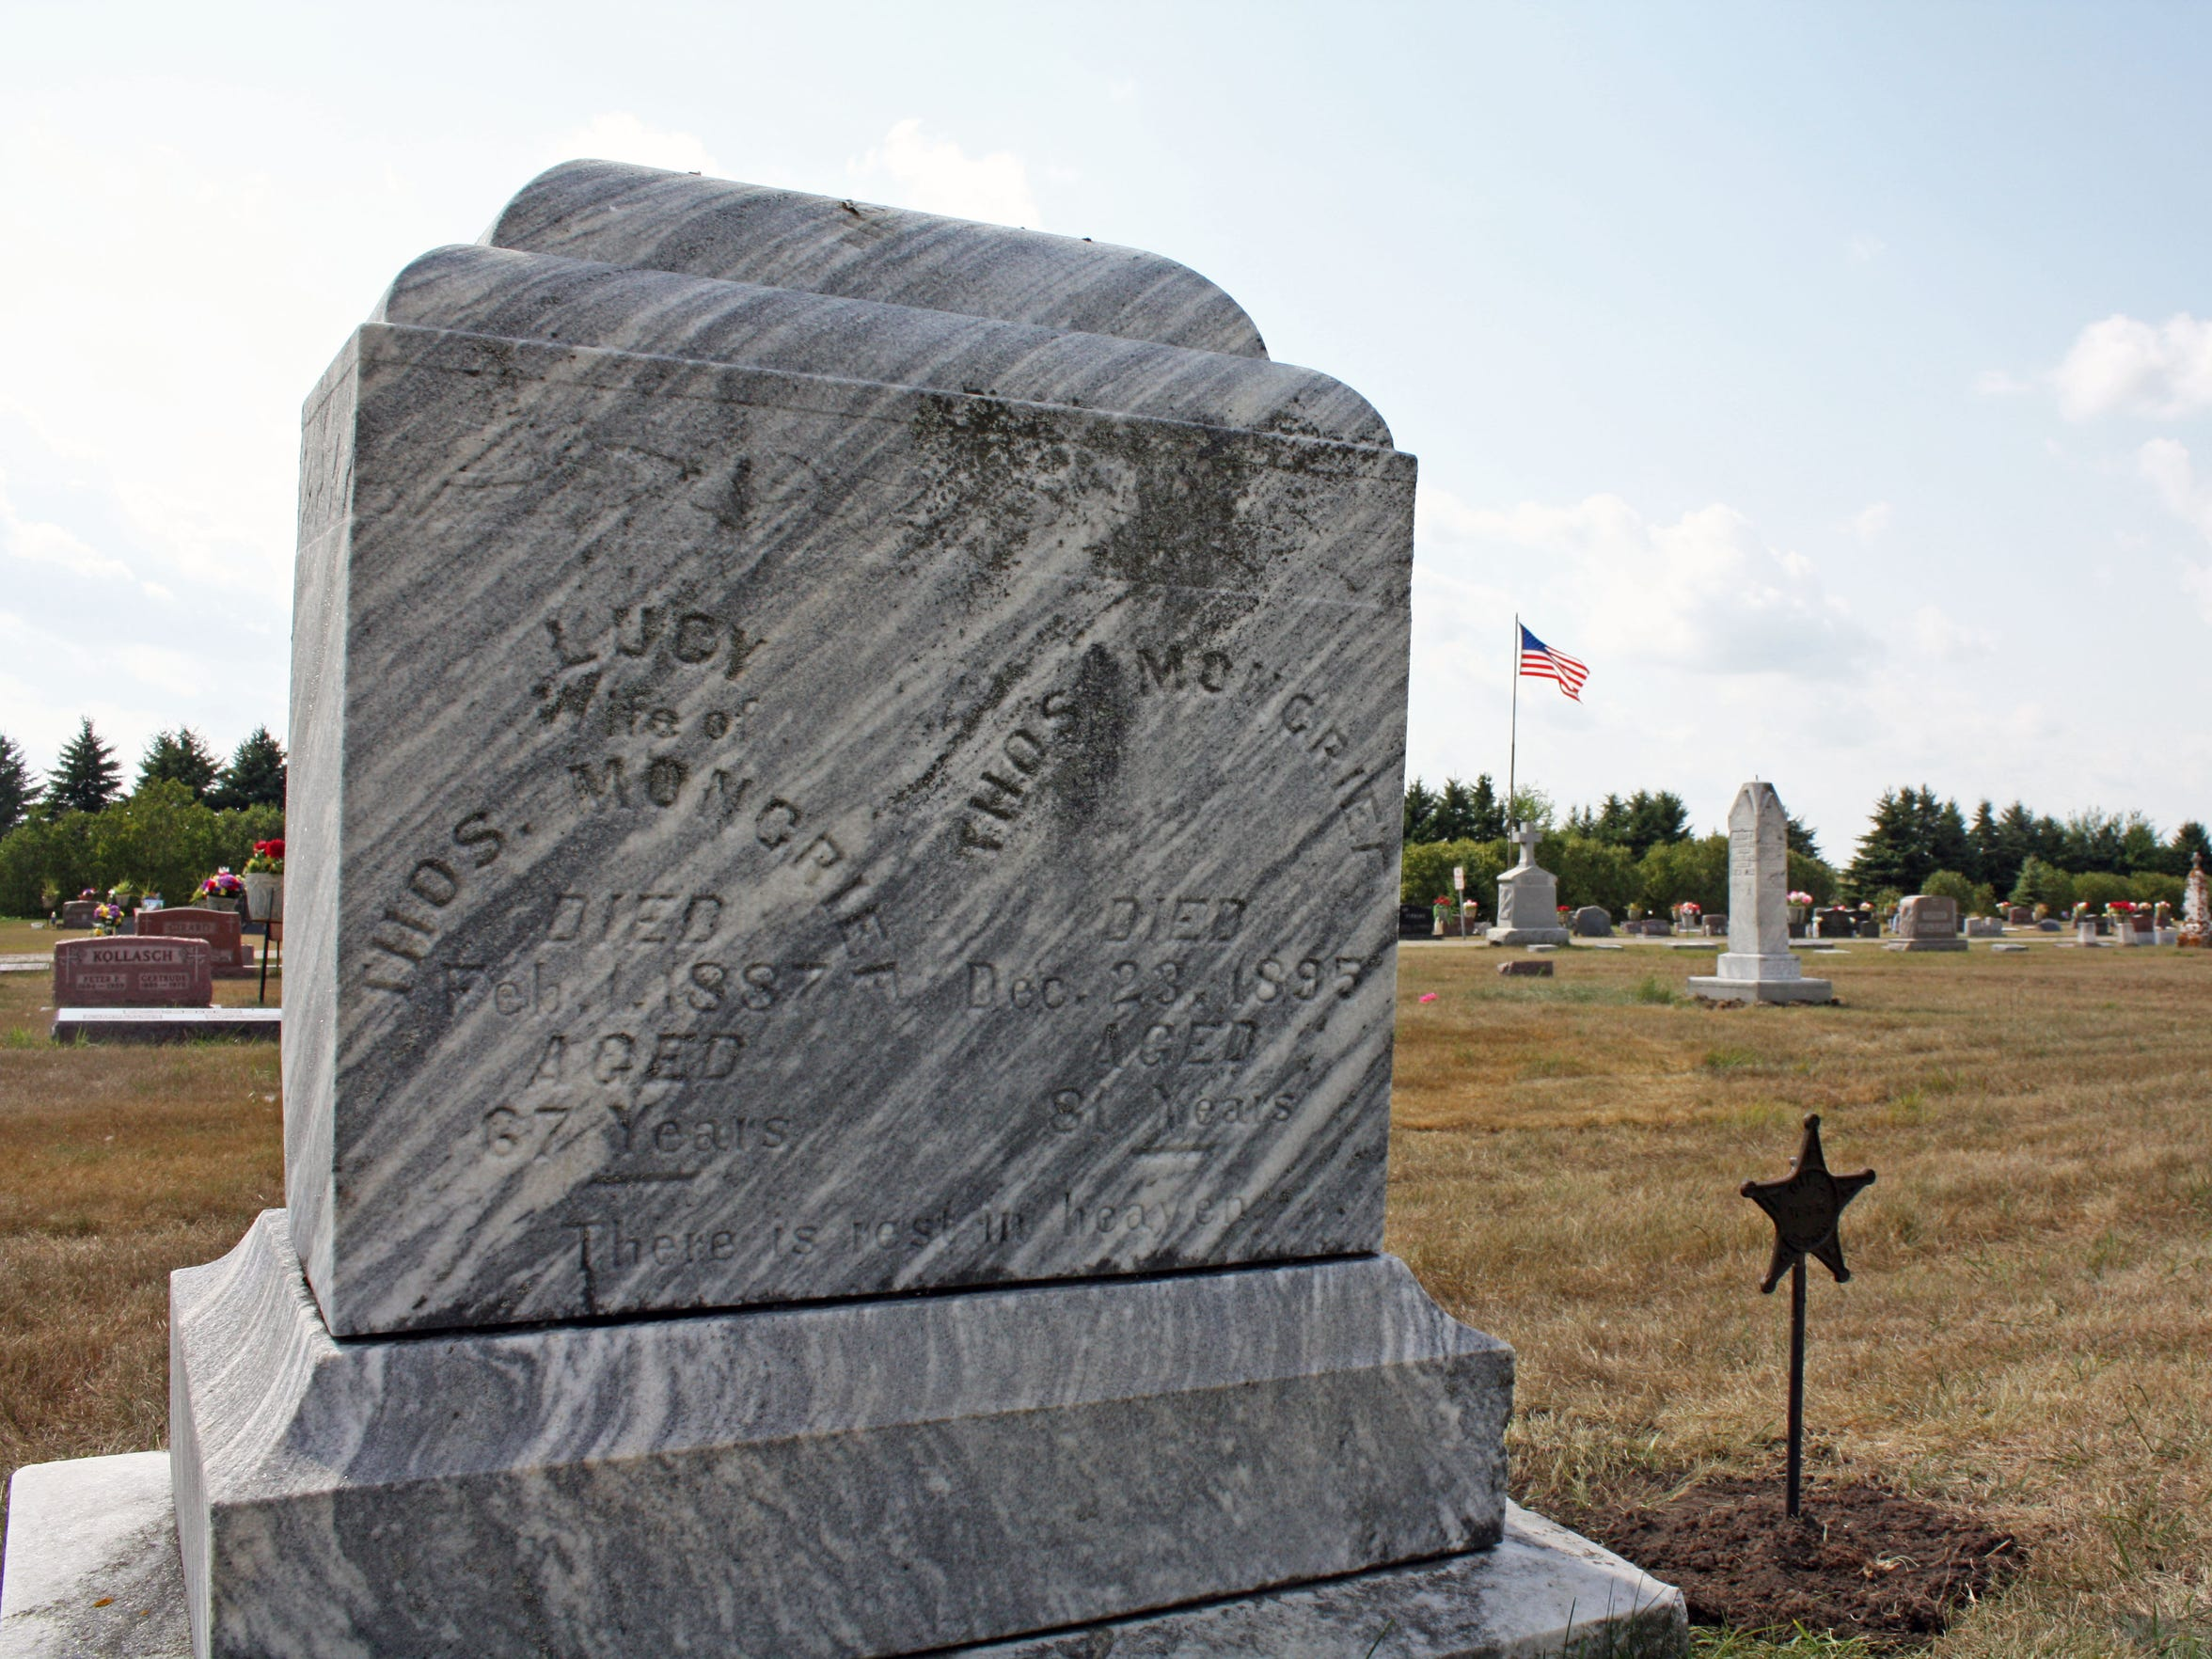 The tombstone of Thomas and Lucy Moncrief in Emmetsburg, Iowa